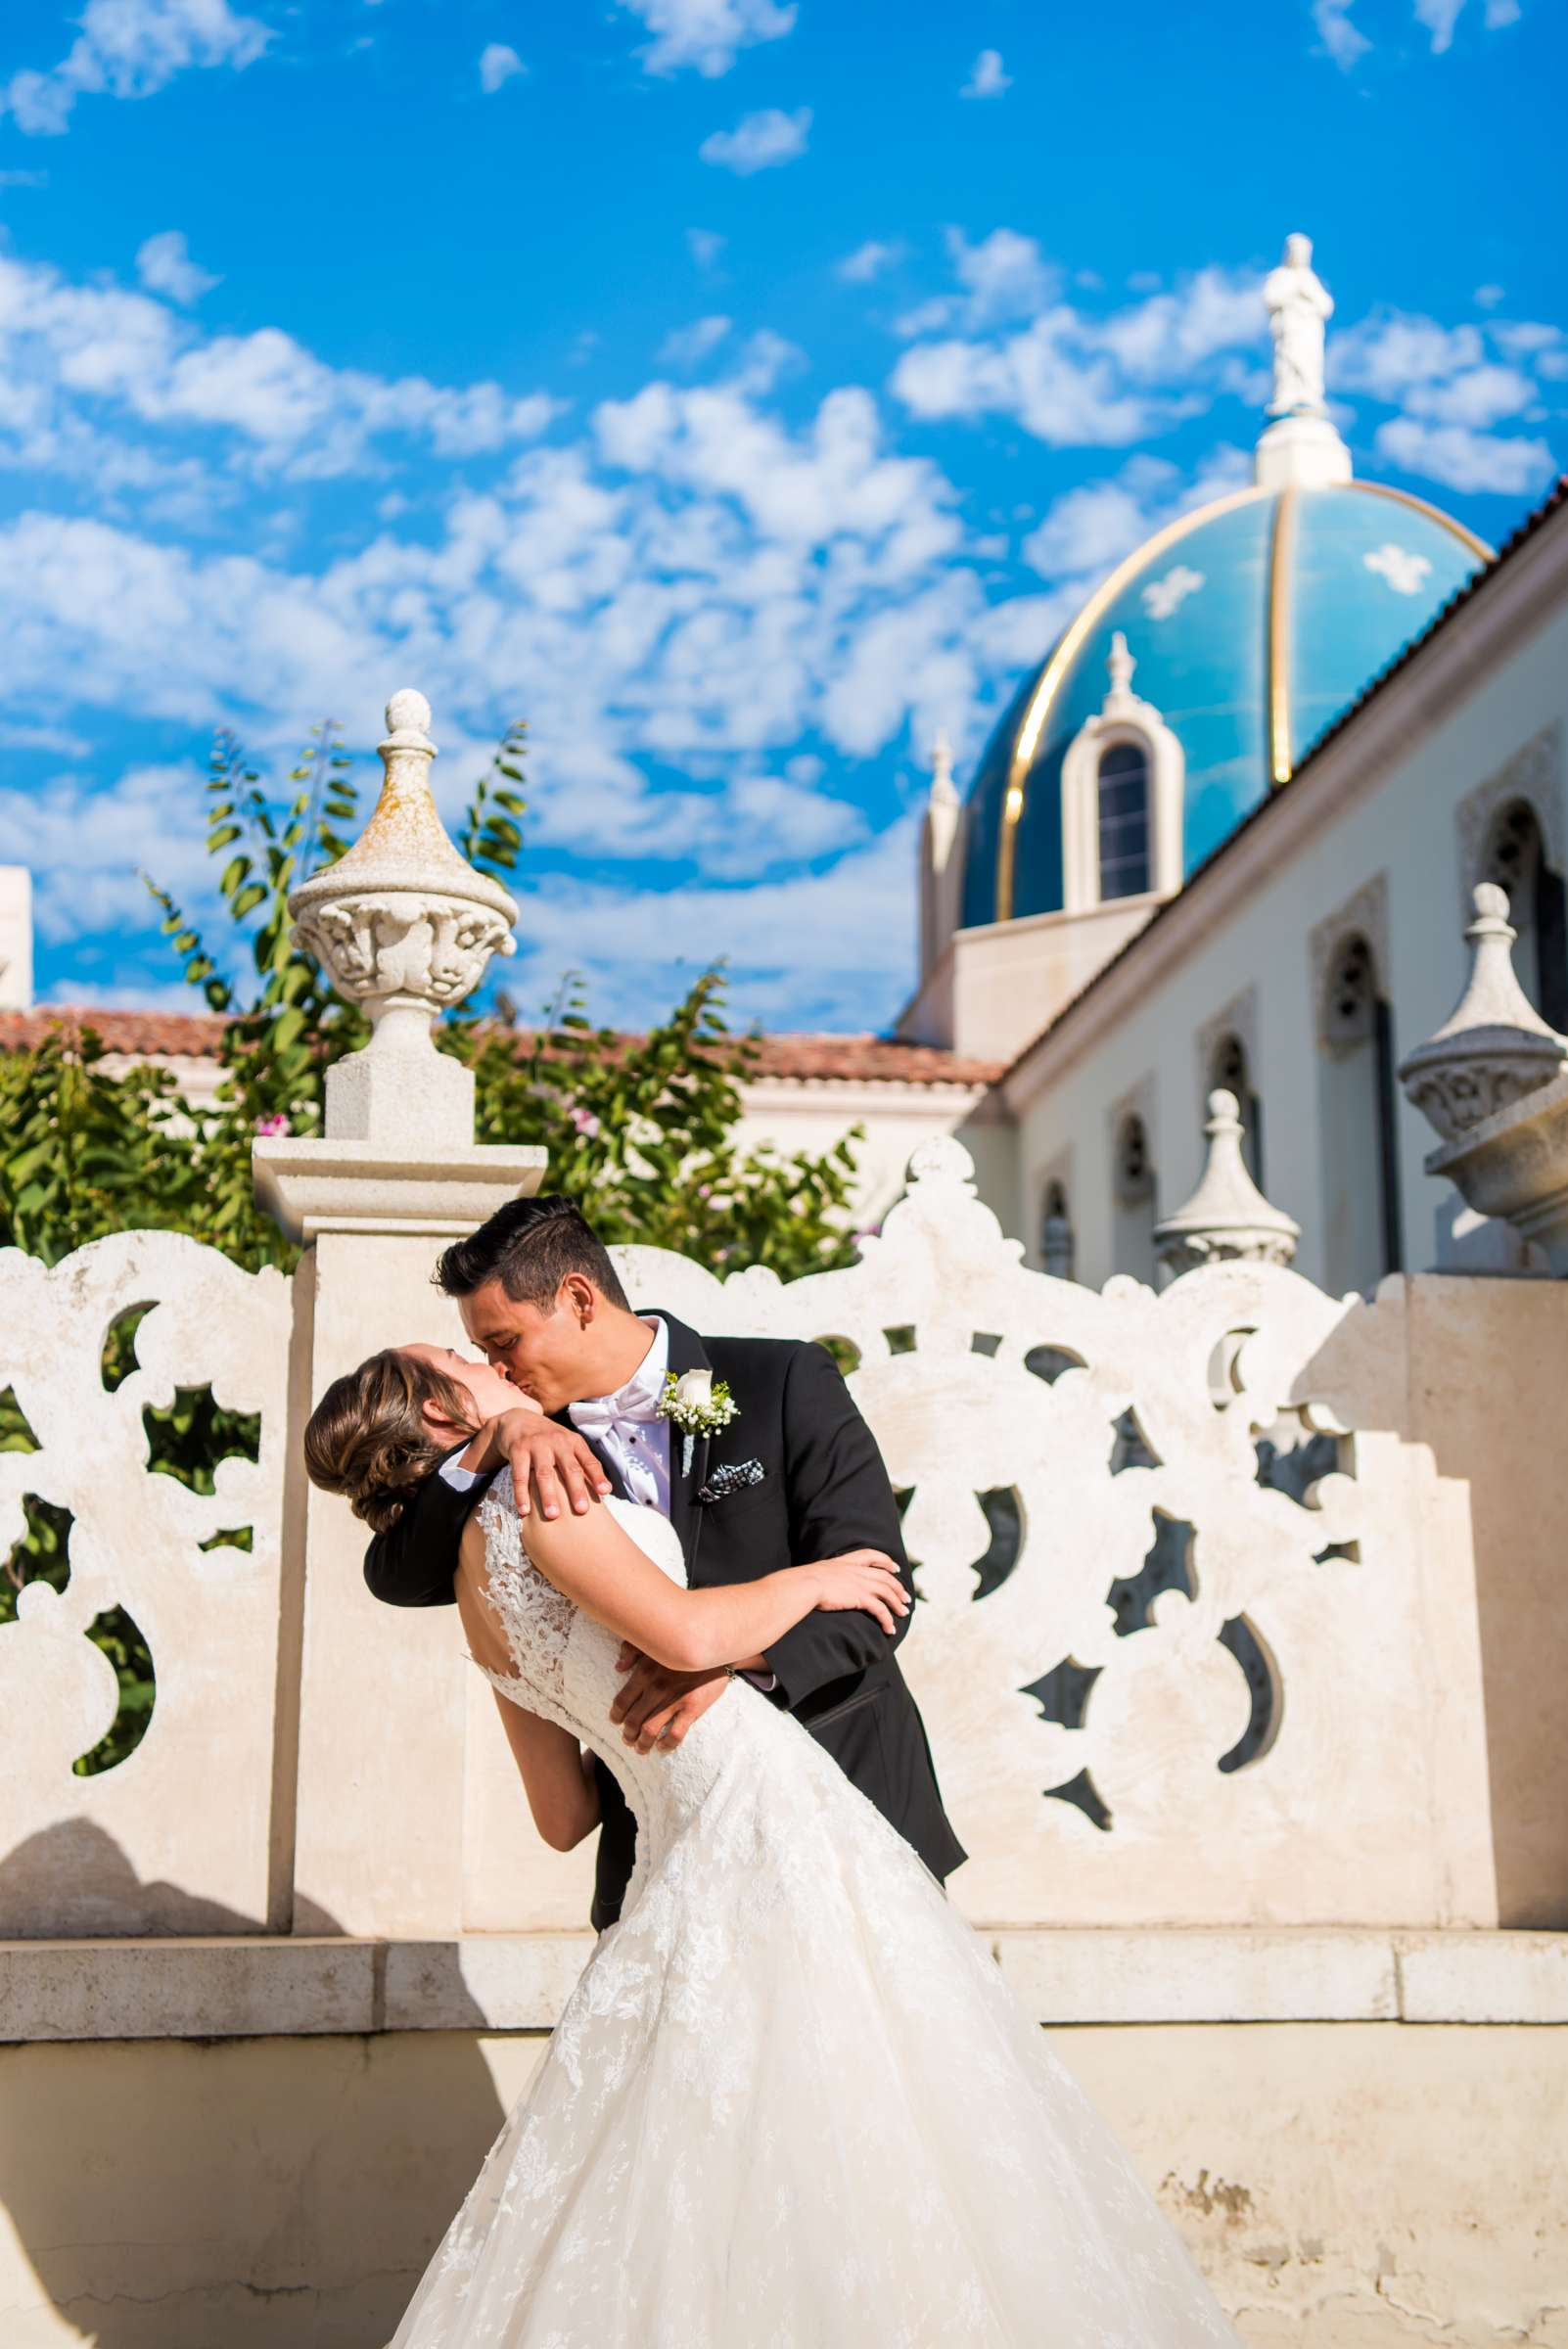 The Immaculata Wedding, Arianna and Jonah Wedding Photo #1 by True Photography